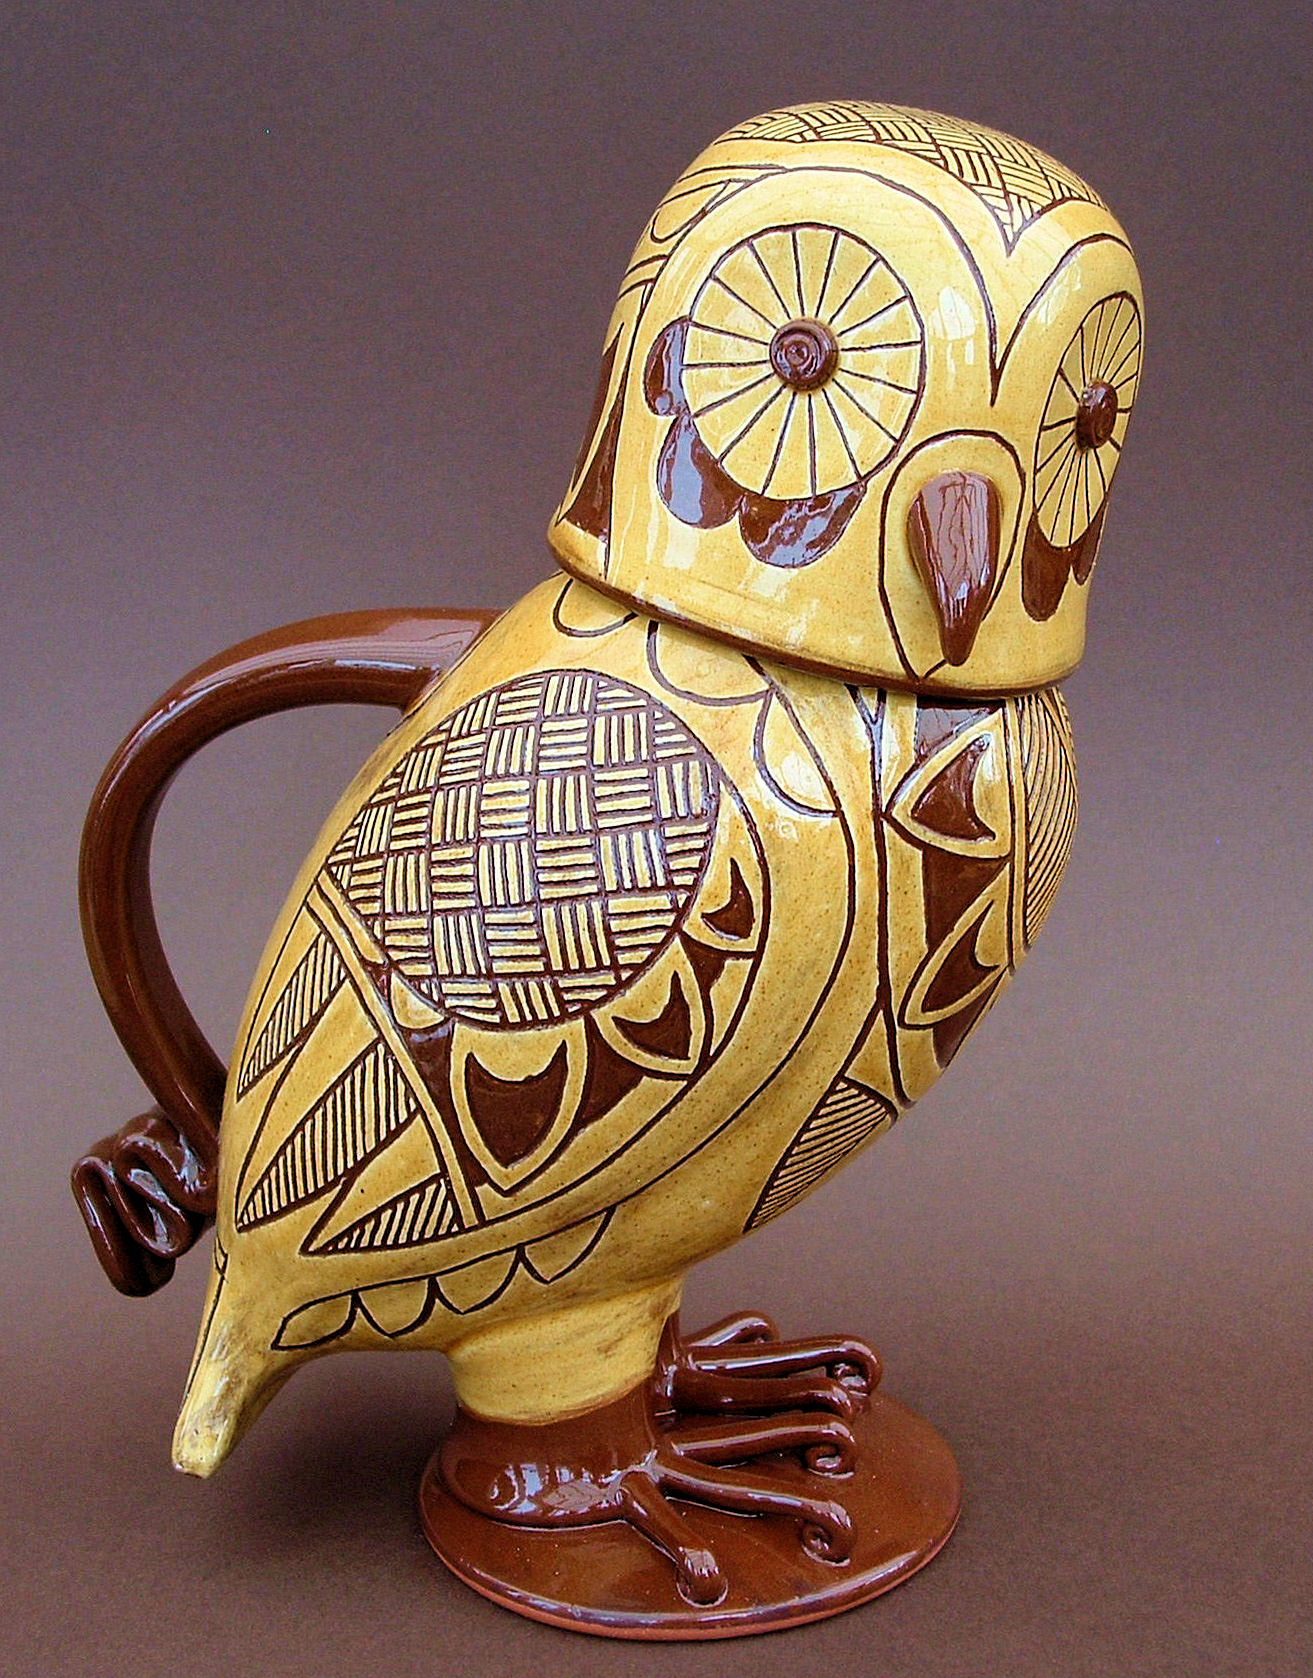 "2 Tone Lidded Owl Jug 10"" tall"